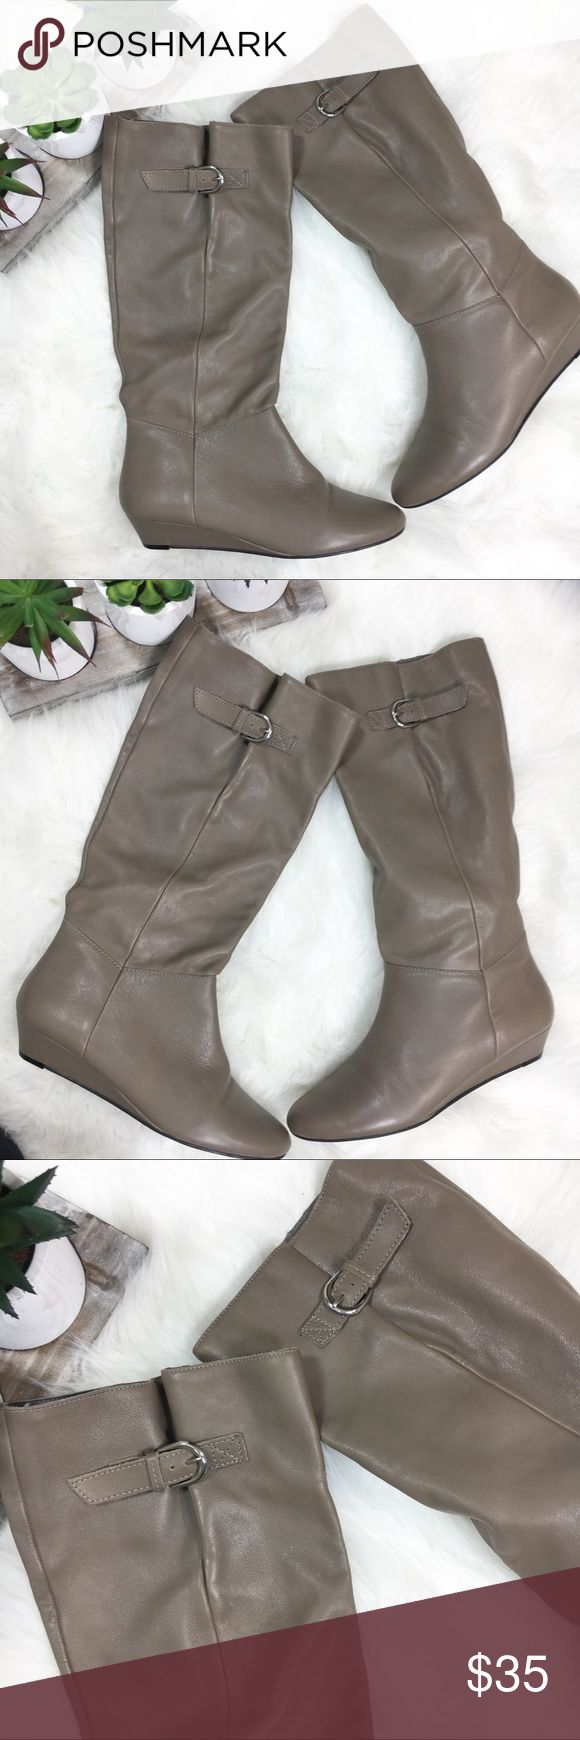 Steven Steve Madden Intyce Gray Leather Boots 9M Steven By Steve Madden Womens Intyce Knee High Leather Boots Light Brown Gray 9M  Heel Height- 1.5 Inches Steven By Steve Madden Shoes Heeled Boots